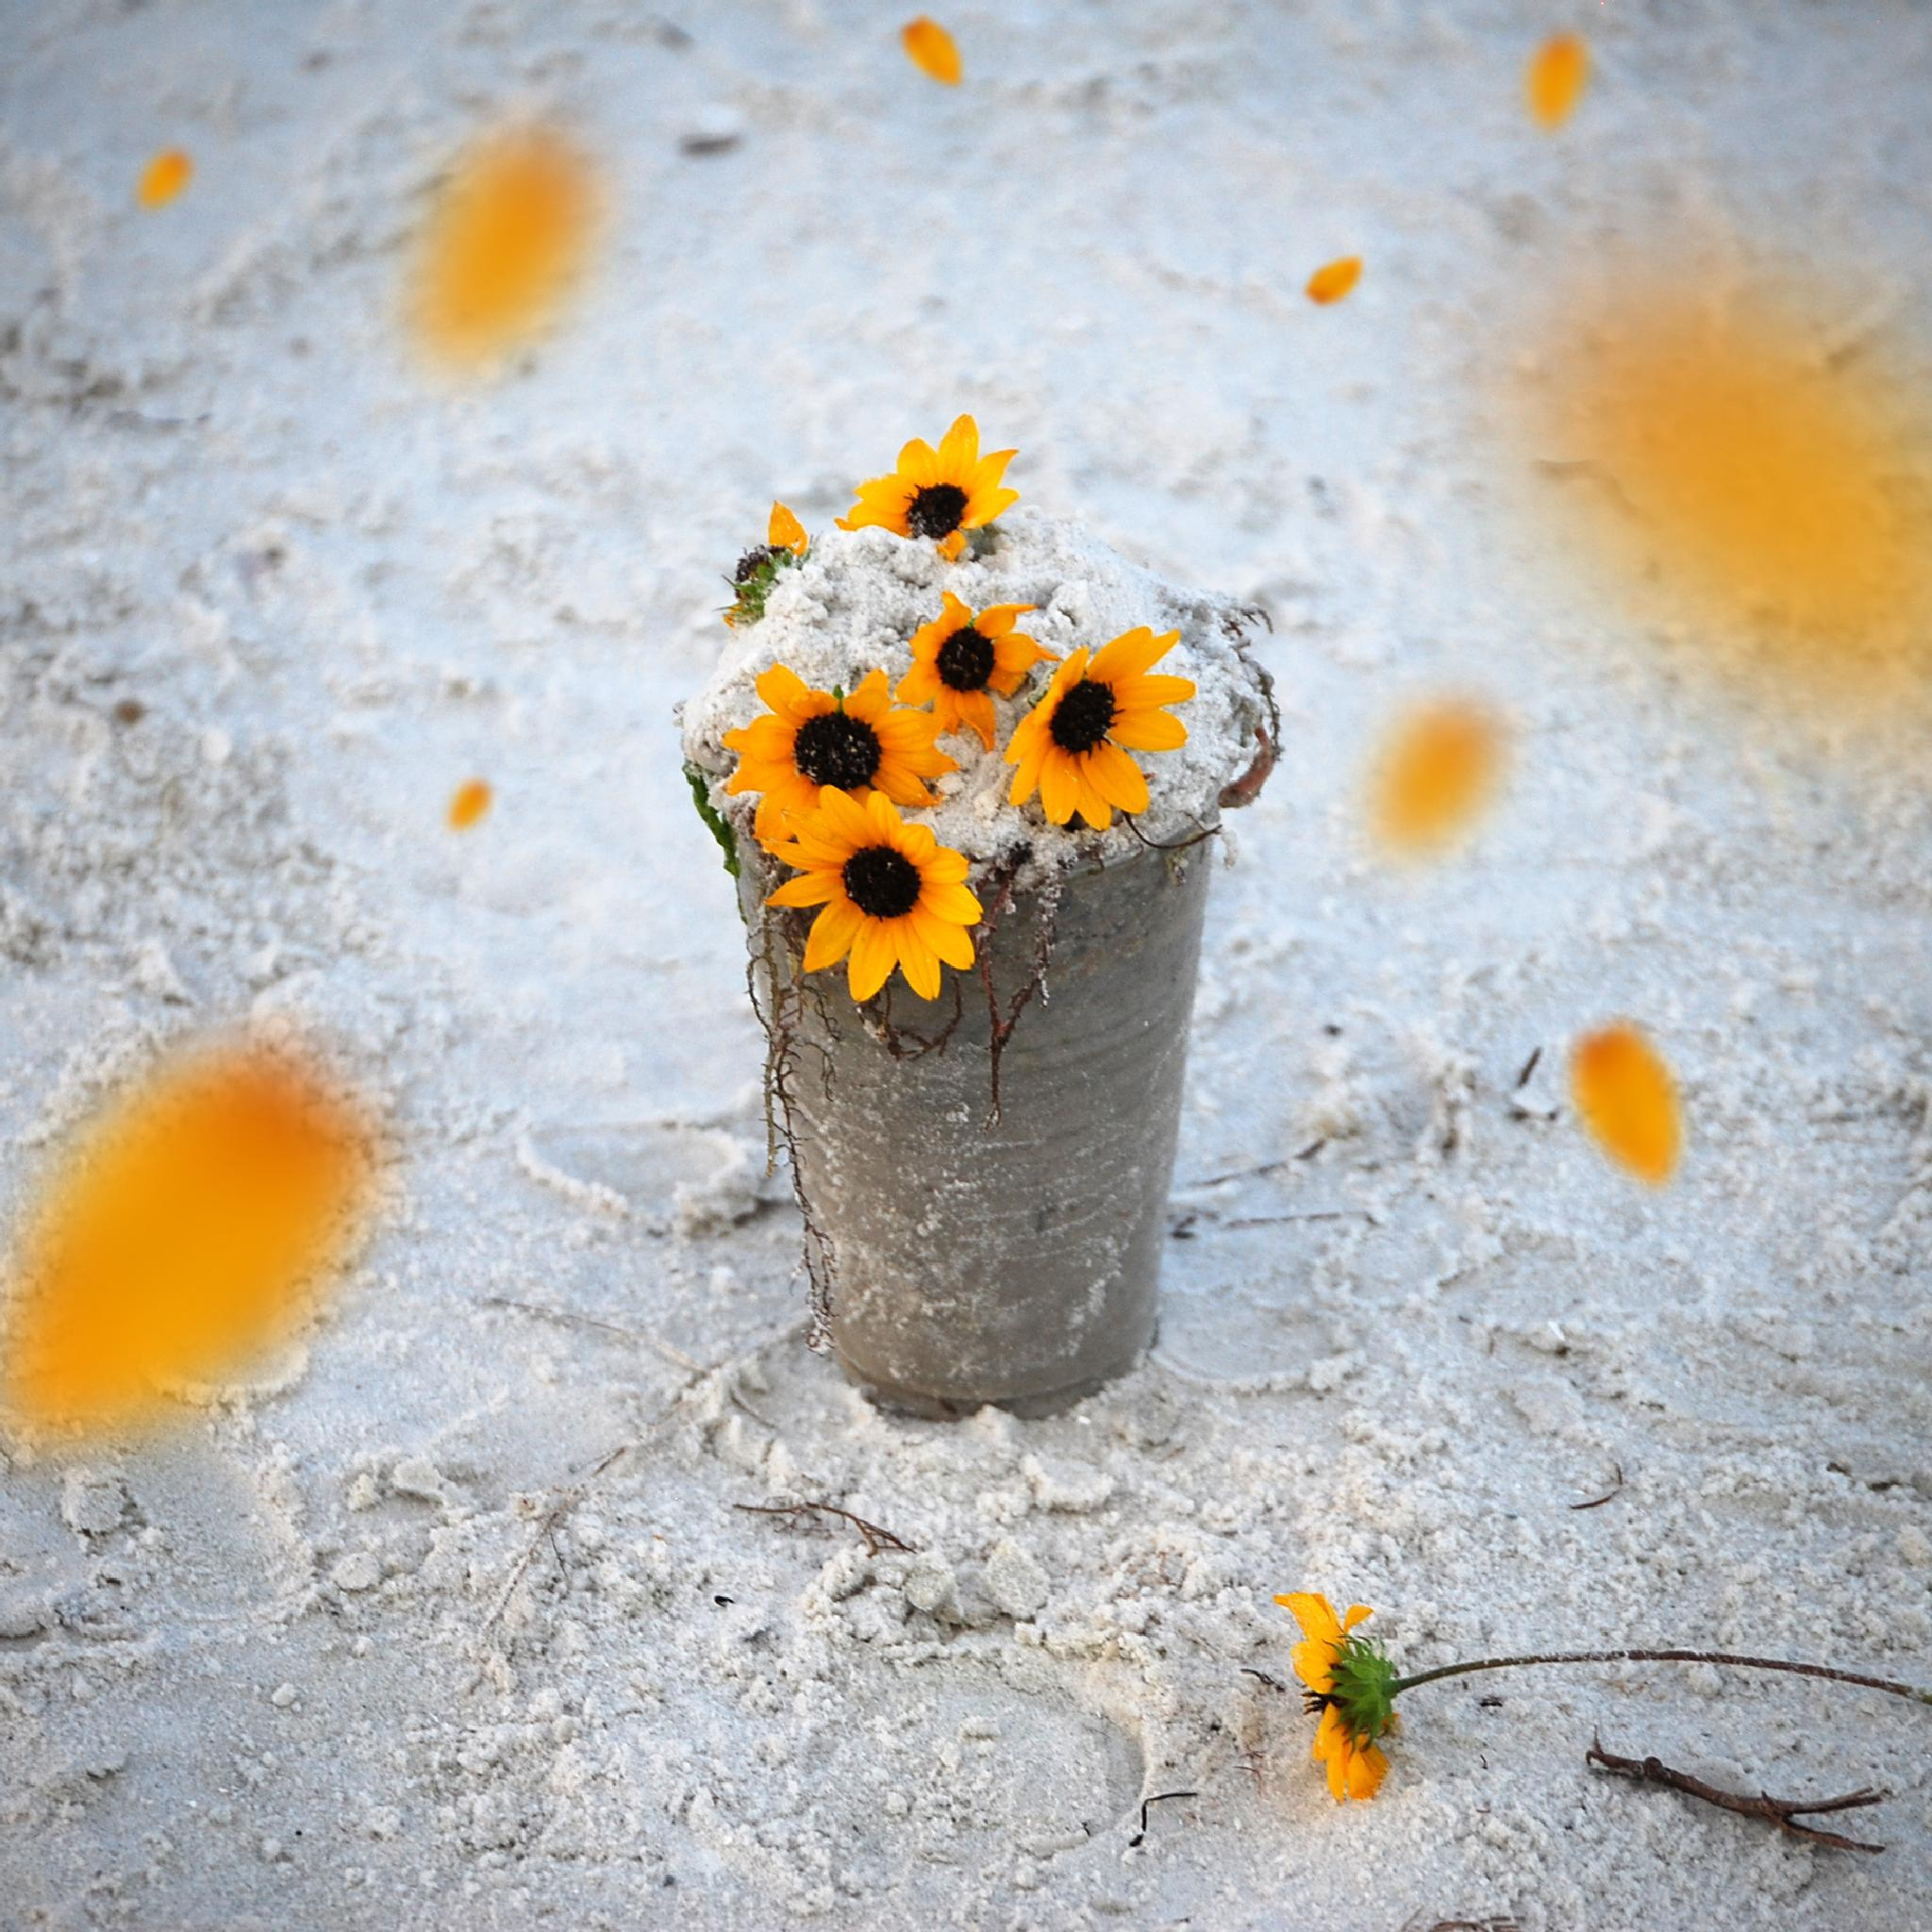 Yellow Flowers on the sand by mrjsbelieve